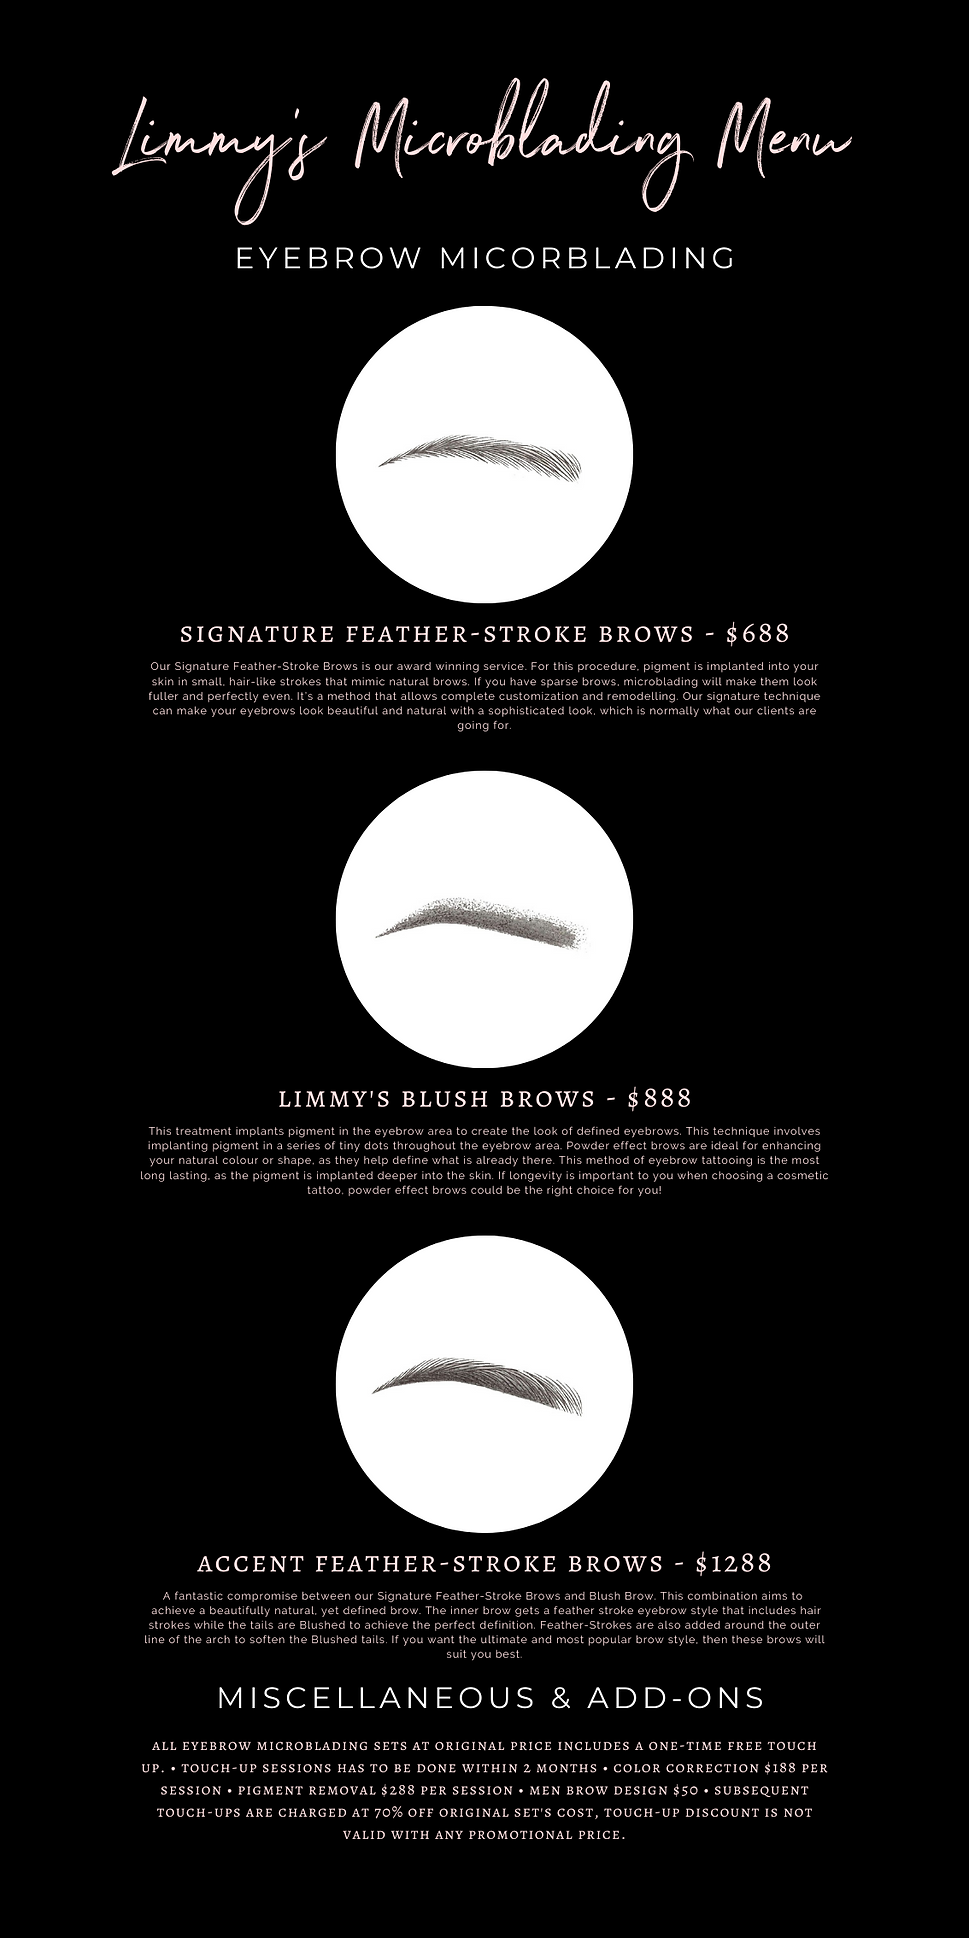 LA EYEBROW EYELASH MENU (6).png